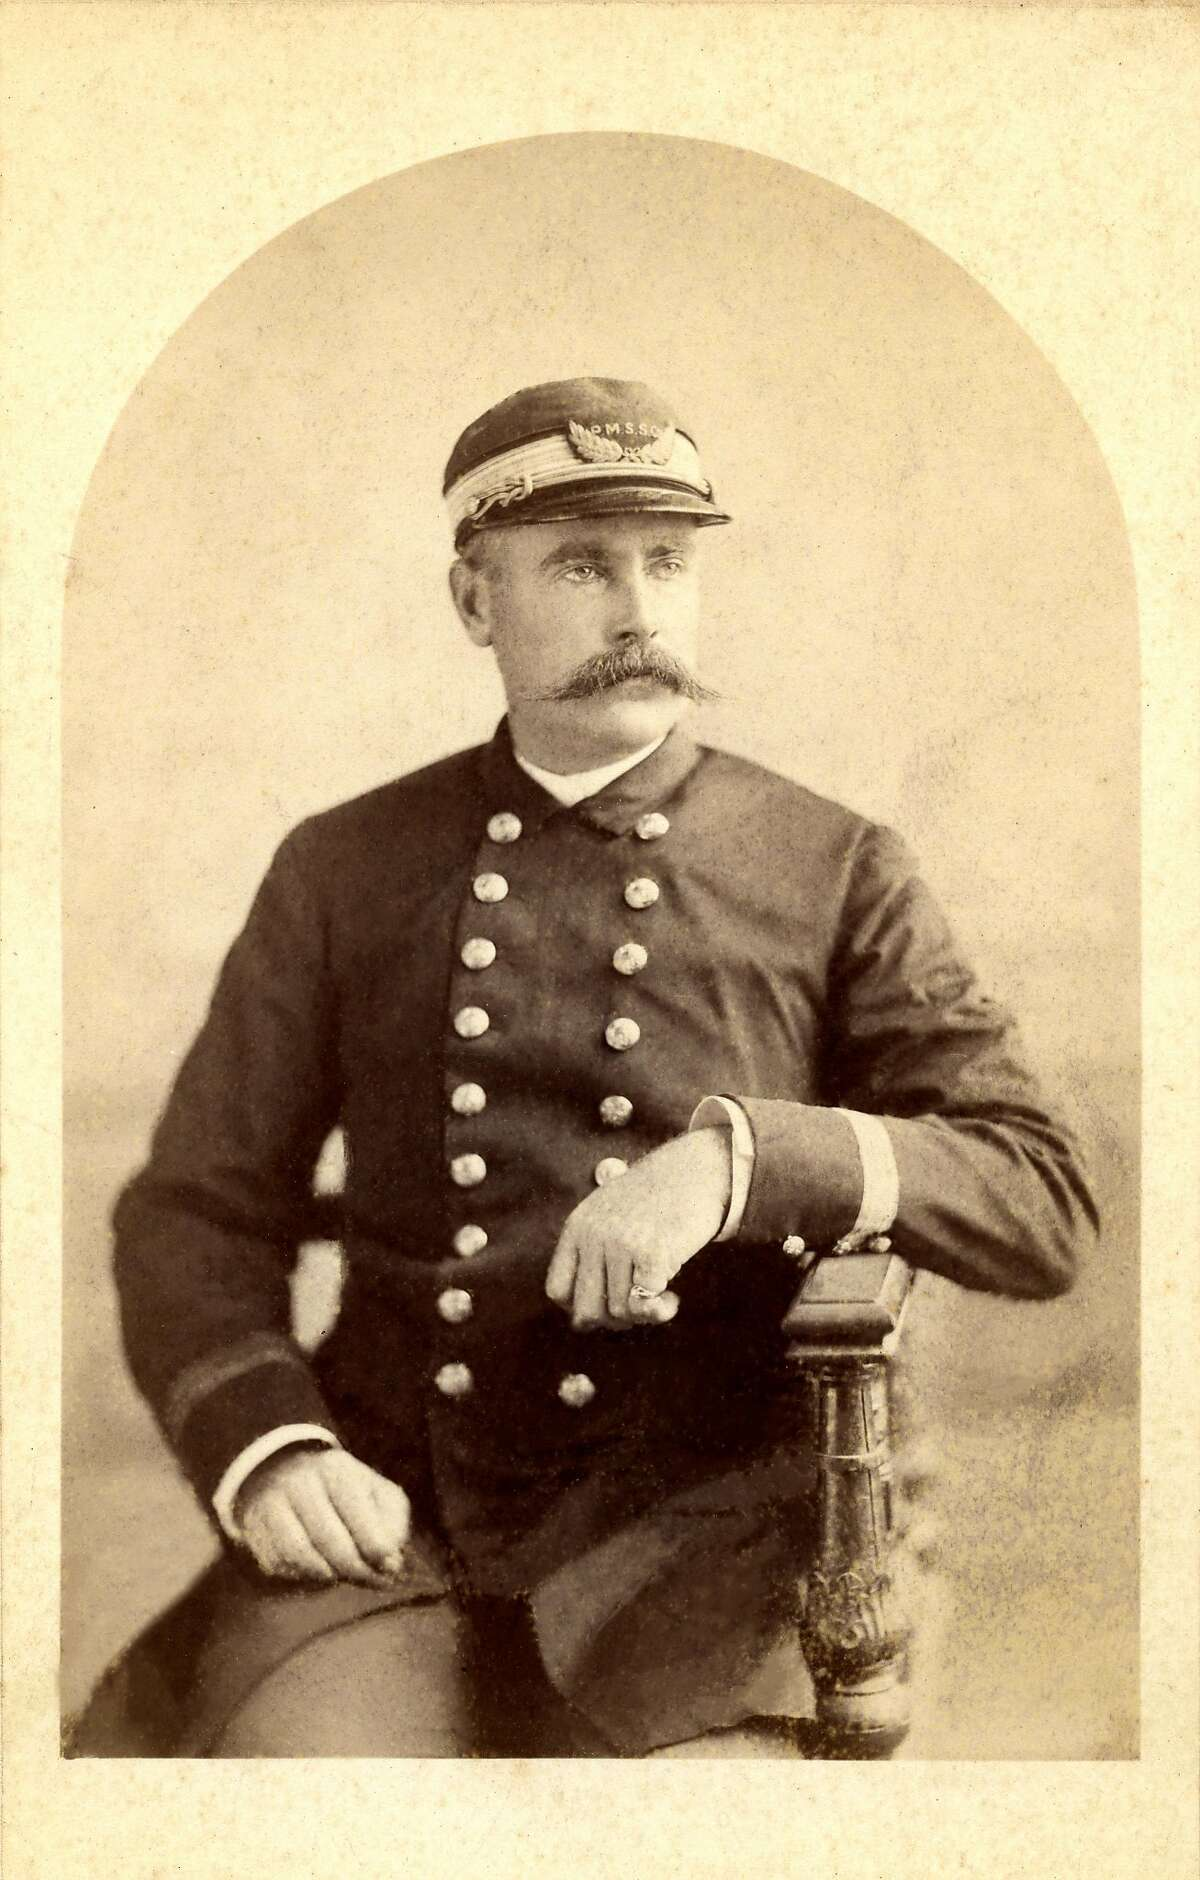 Captain William Ward, master of the SS City of Rio de Janeiro at the time of the loss.